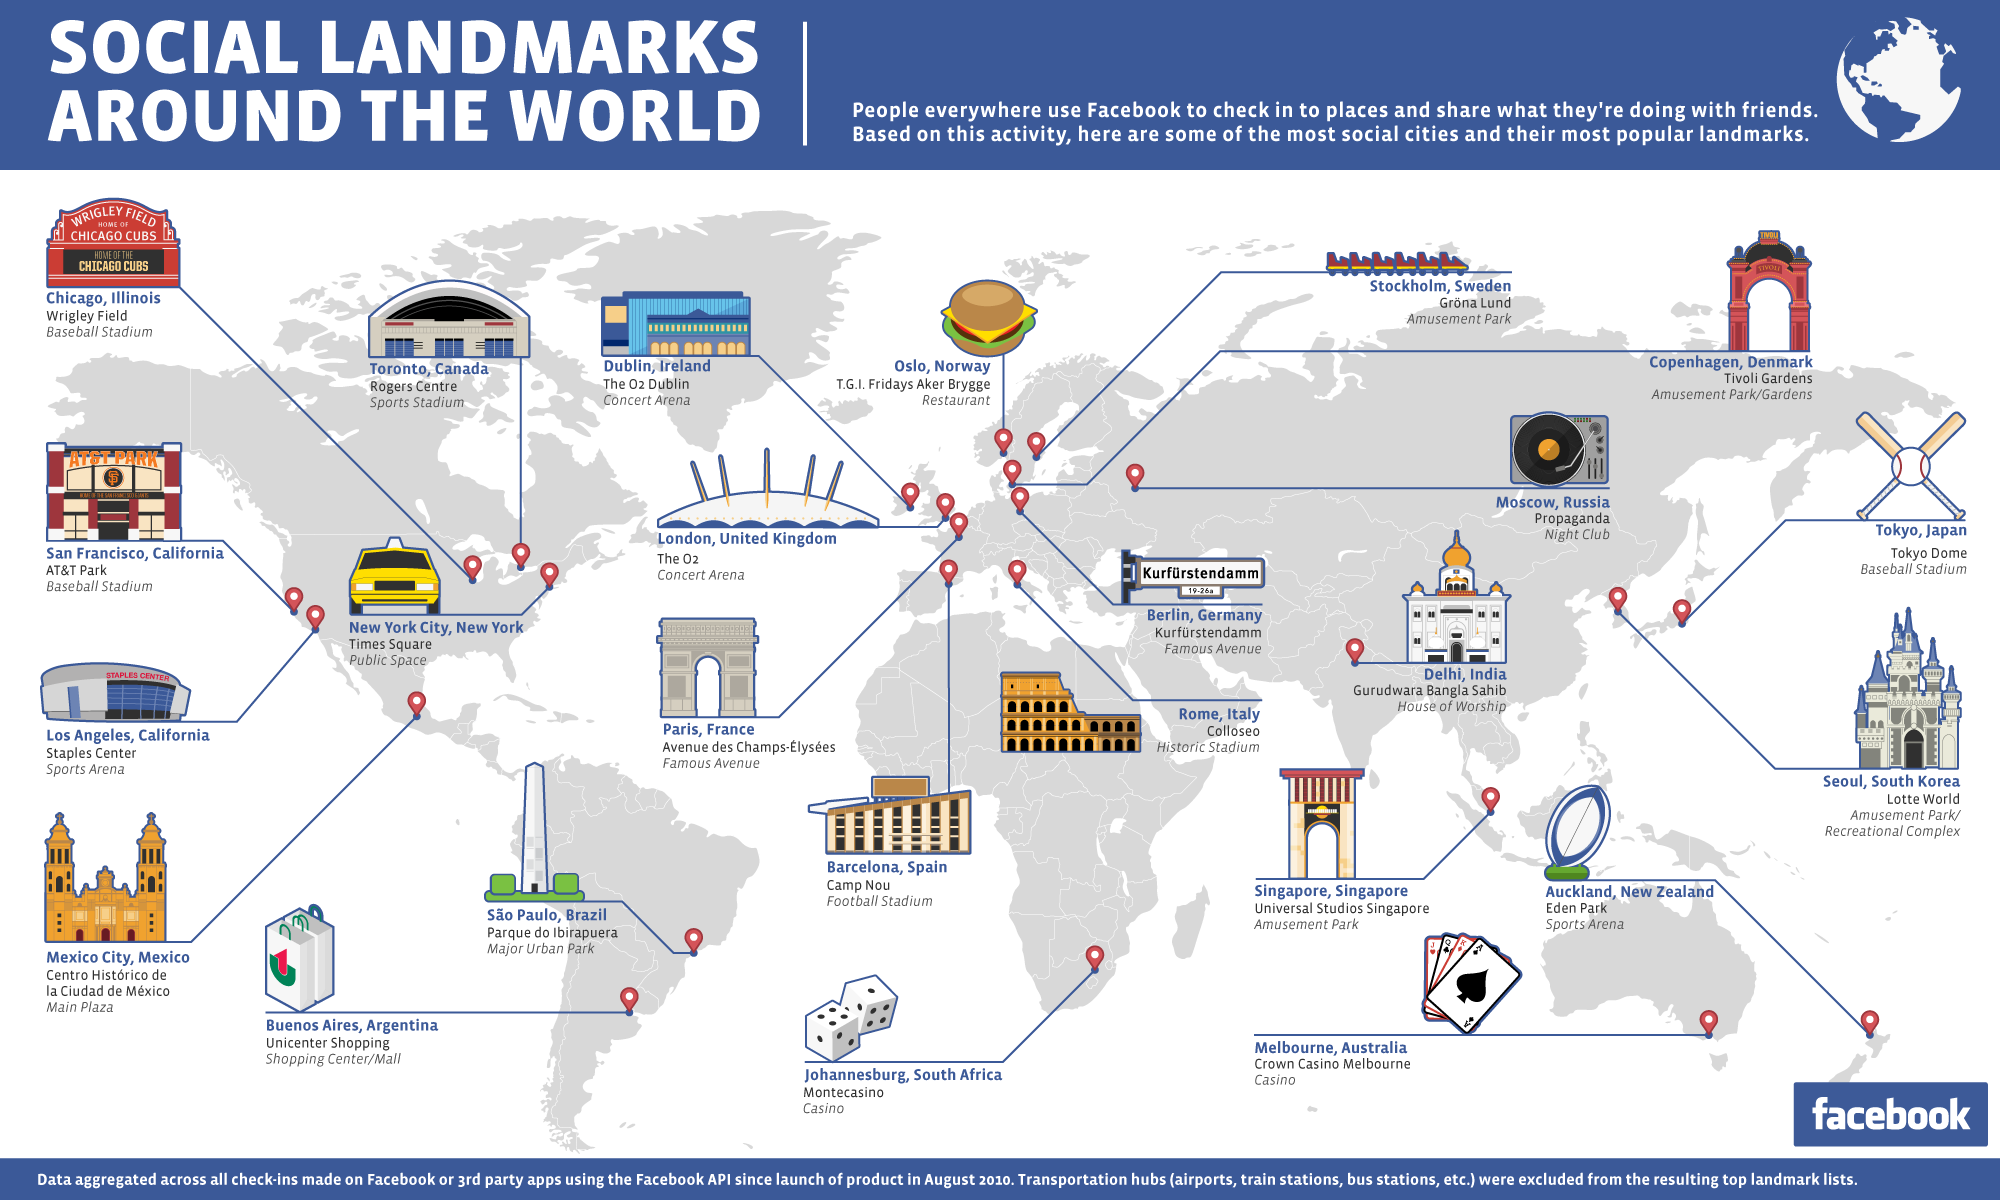 FB Map 1 Facebook digs deep into its shared location data to find the worlds most social landmarks